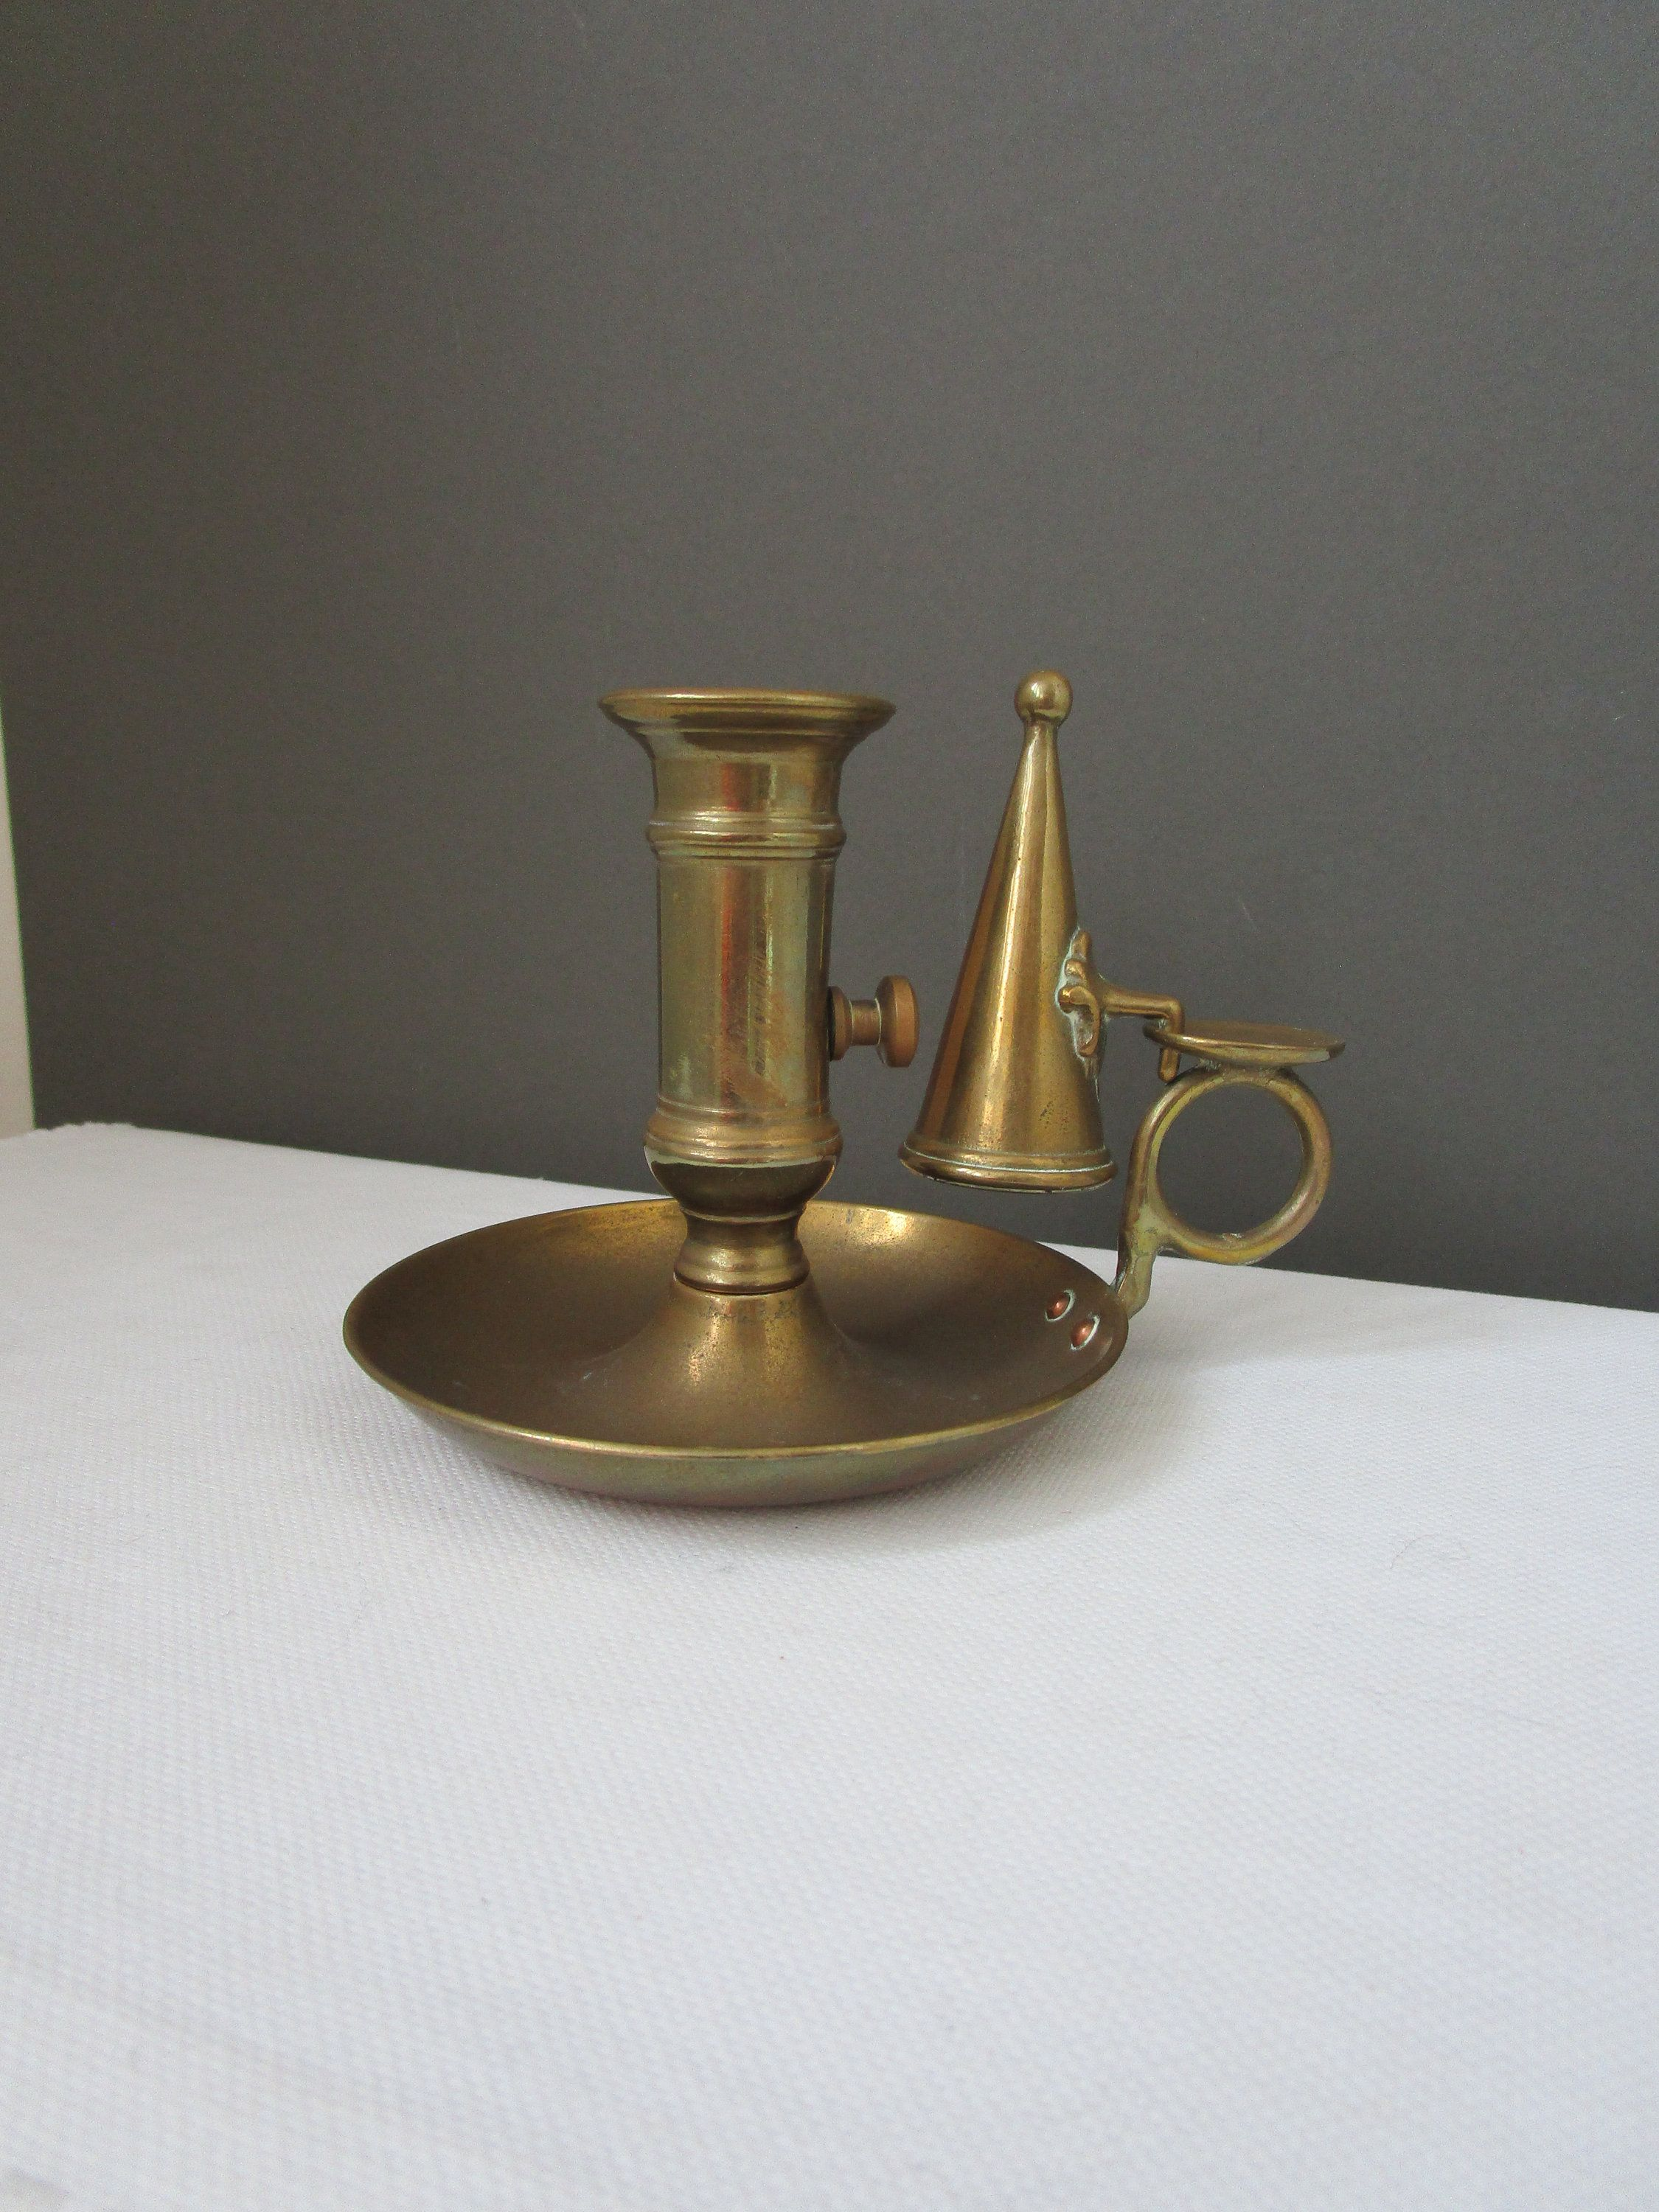 Antique Push Up Brass Chamberstick  Rustic Taper Candle Holder  French Country Farmhouse Decor